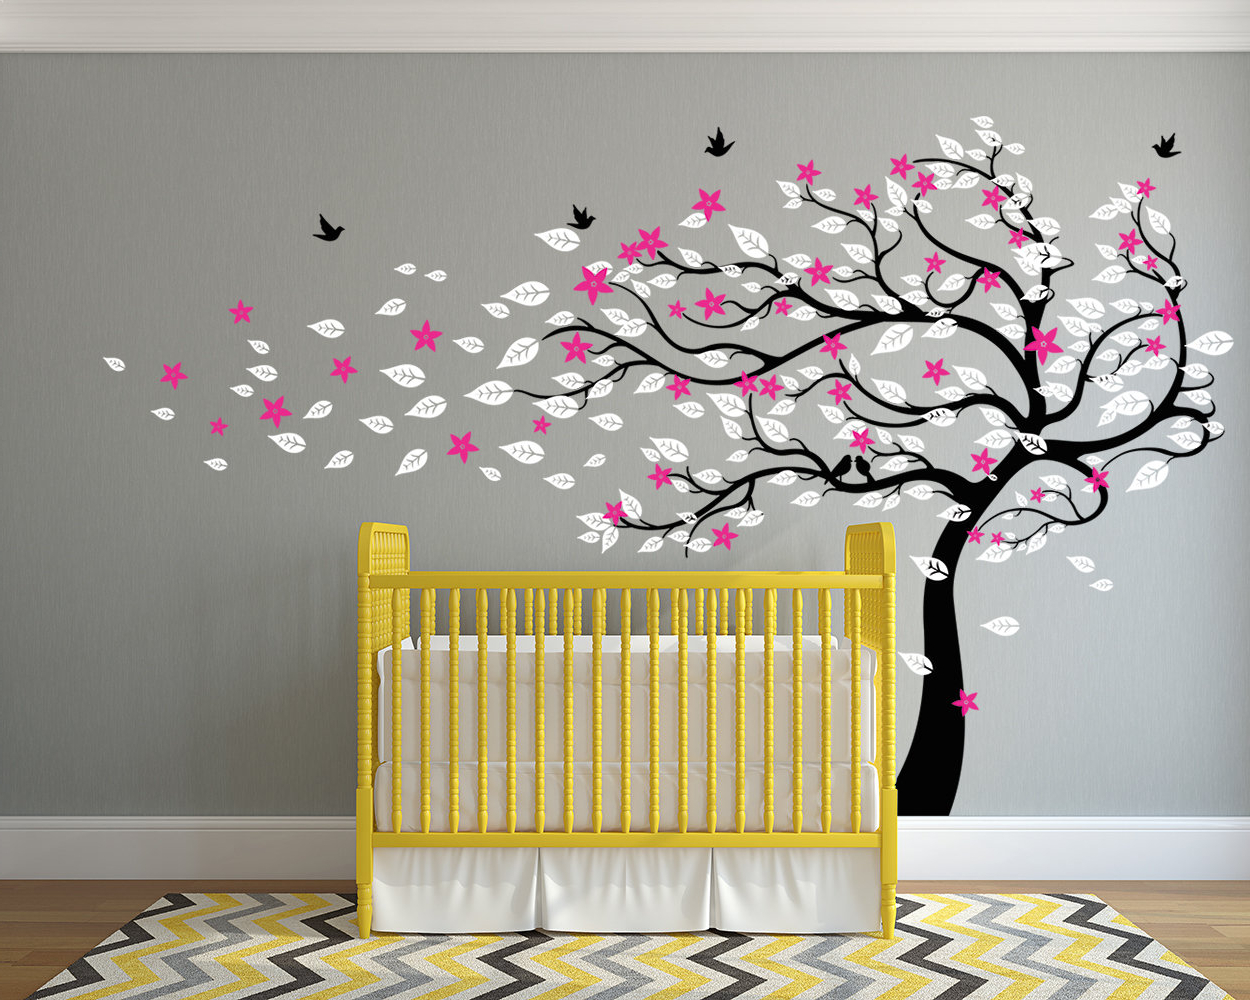 Red Barrel Studio Blowing Spring Blossom Tree With Birds Wall Decal Regarding Popular Tree Of Life Wall Decor By Red Barrel Studio (Gallery 12 of 20)